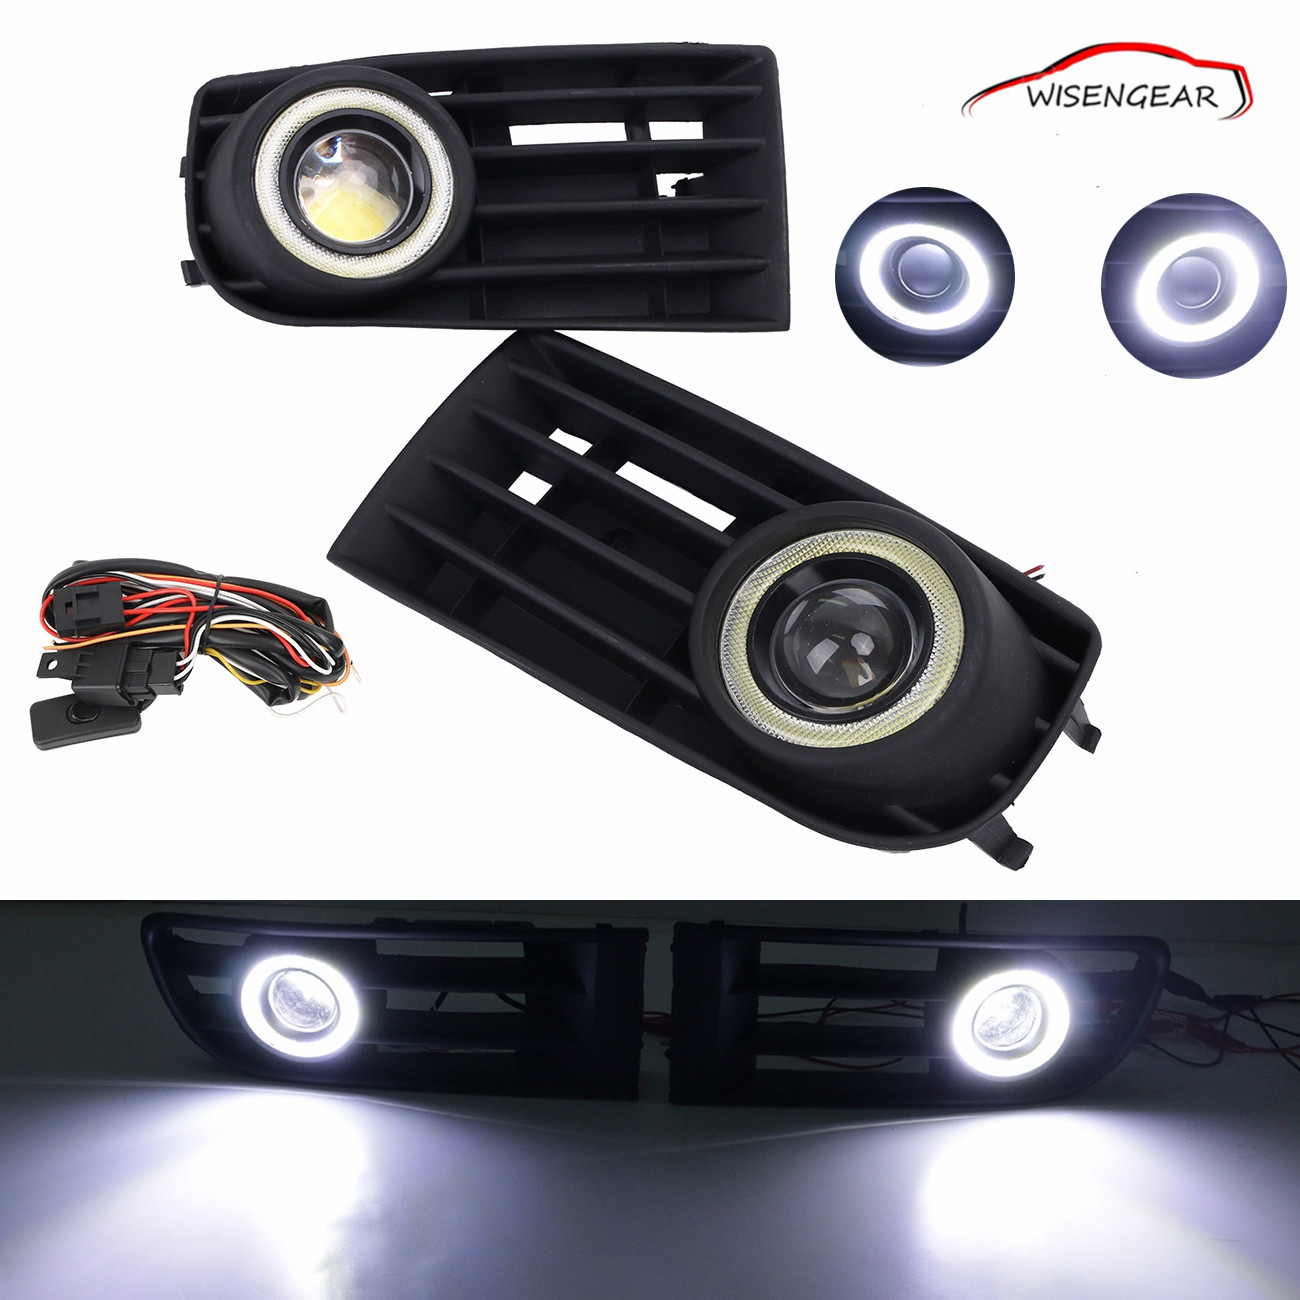 For VW Golf Mk5 Rabbit 2003-2009 Fog Lights Lamp DRL LED Daytime Running lights Bumper Grille projector lens fog lights C/5 auto led car bumper grille drl daytime running light driving fog lamp source bulb for vw volkswagen golf mk4 1997 2006 2pcs